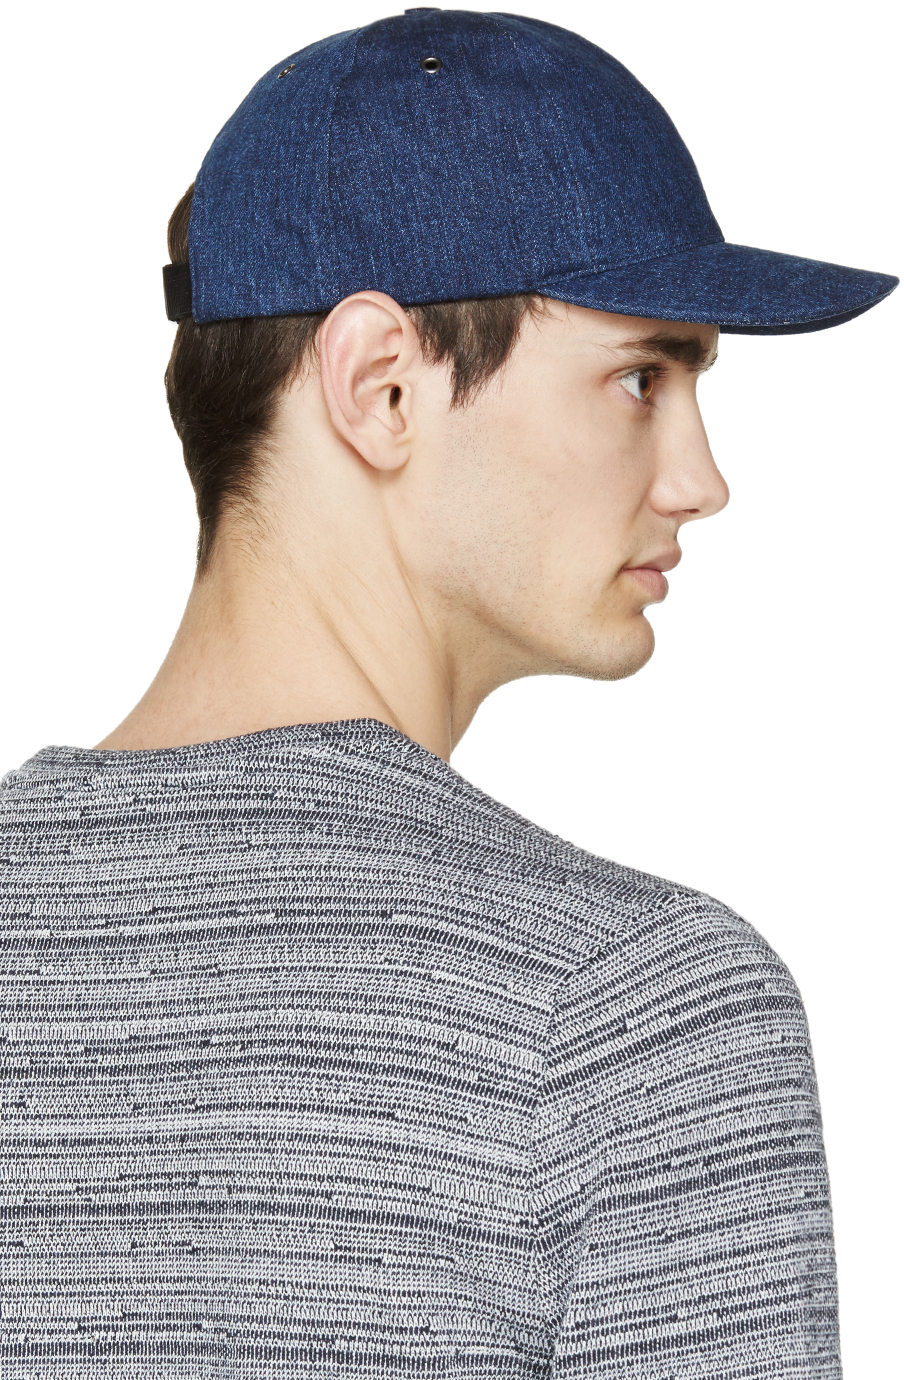 Lyst - A.P.C. Blue Denim Classic Cap in Blue for Men d2018befc0a